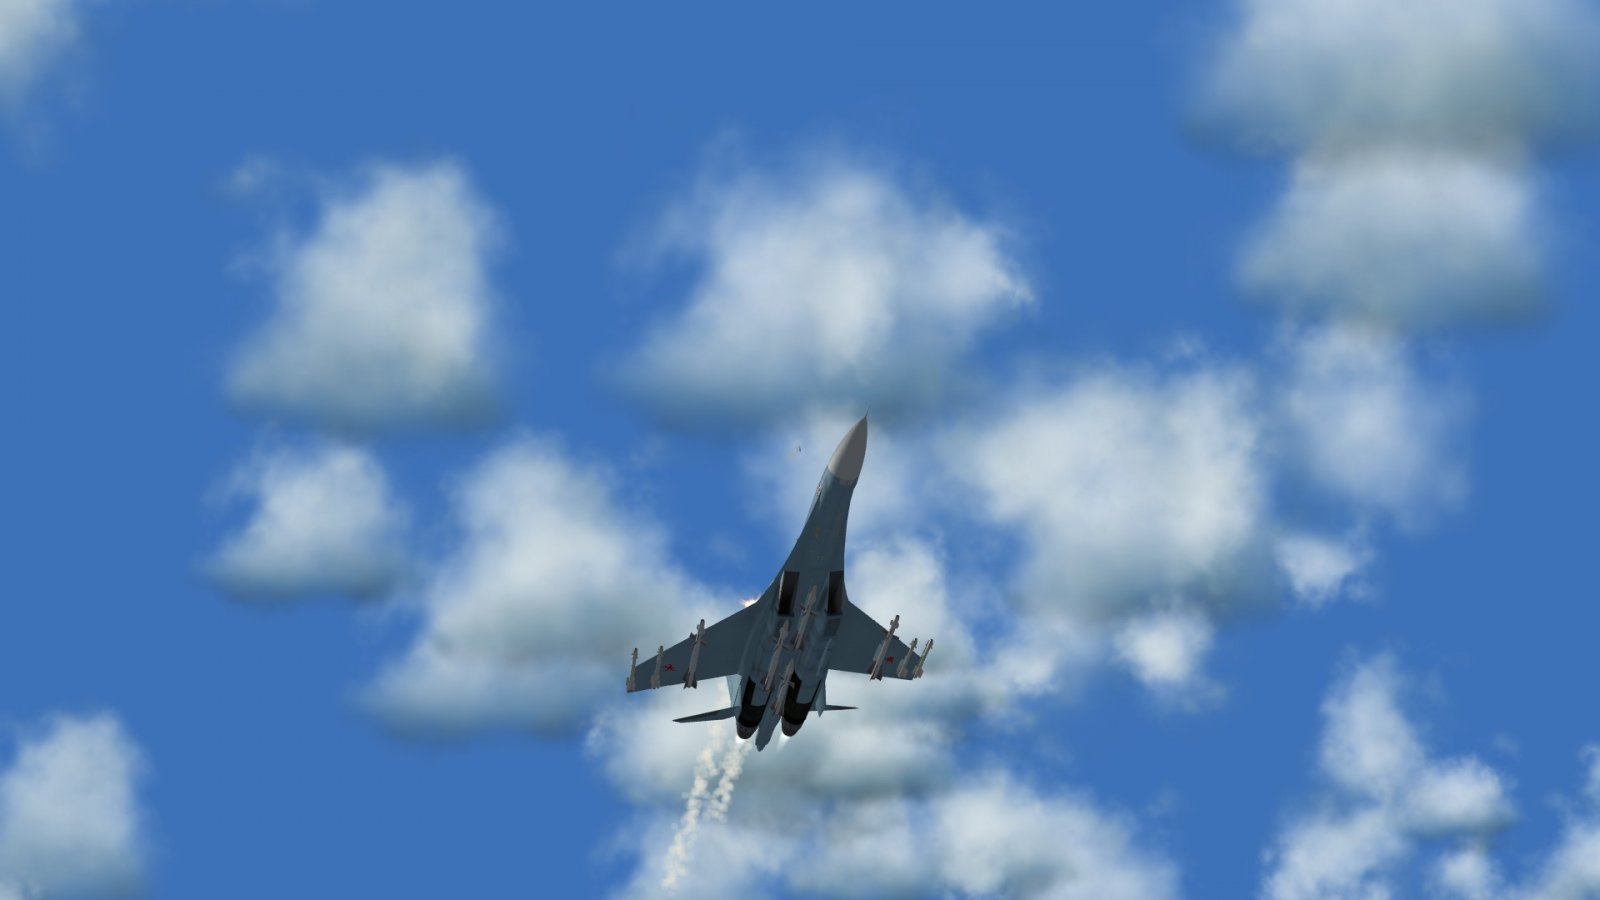 Su-27 Flanker Putting Out Flares